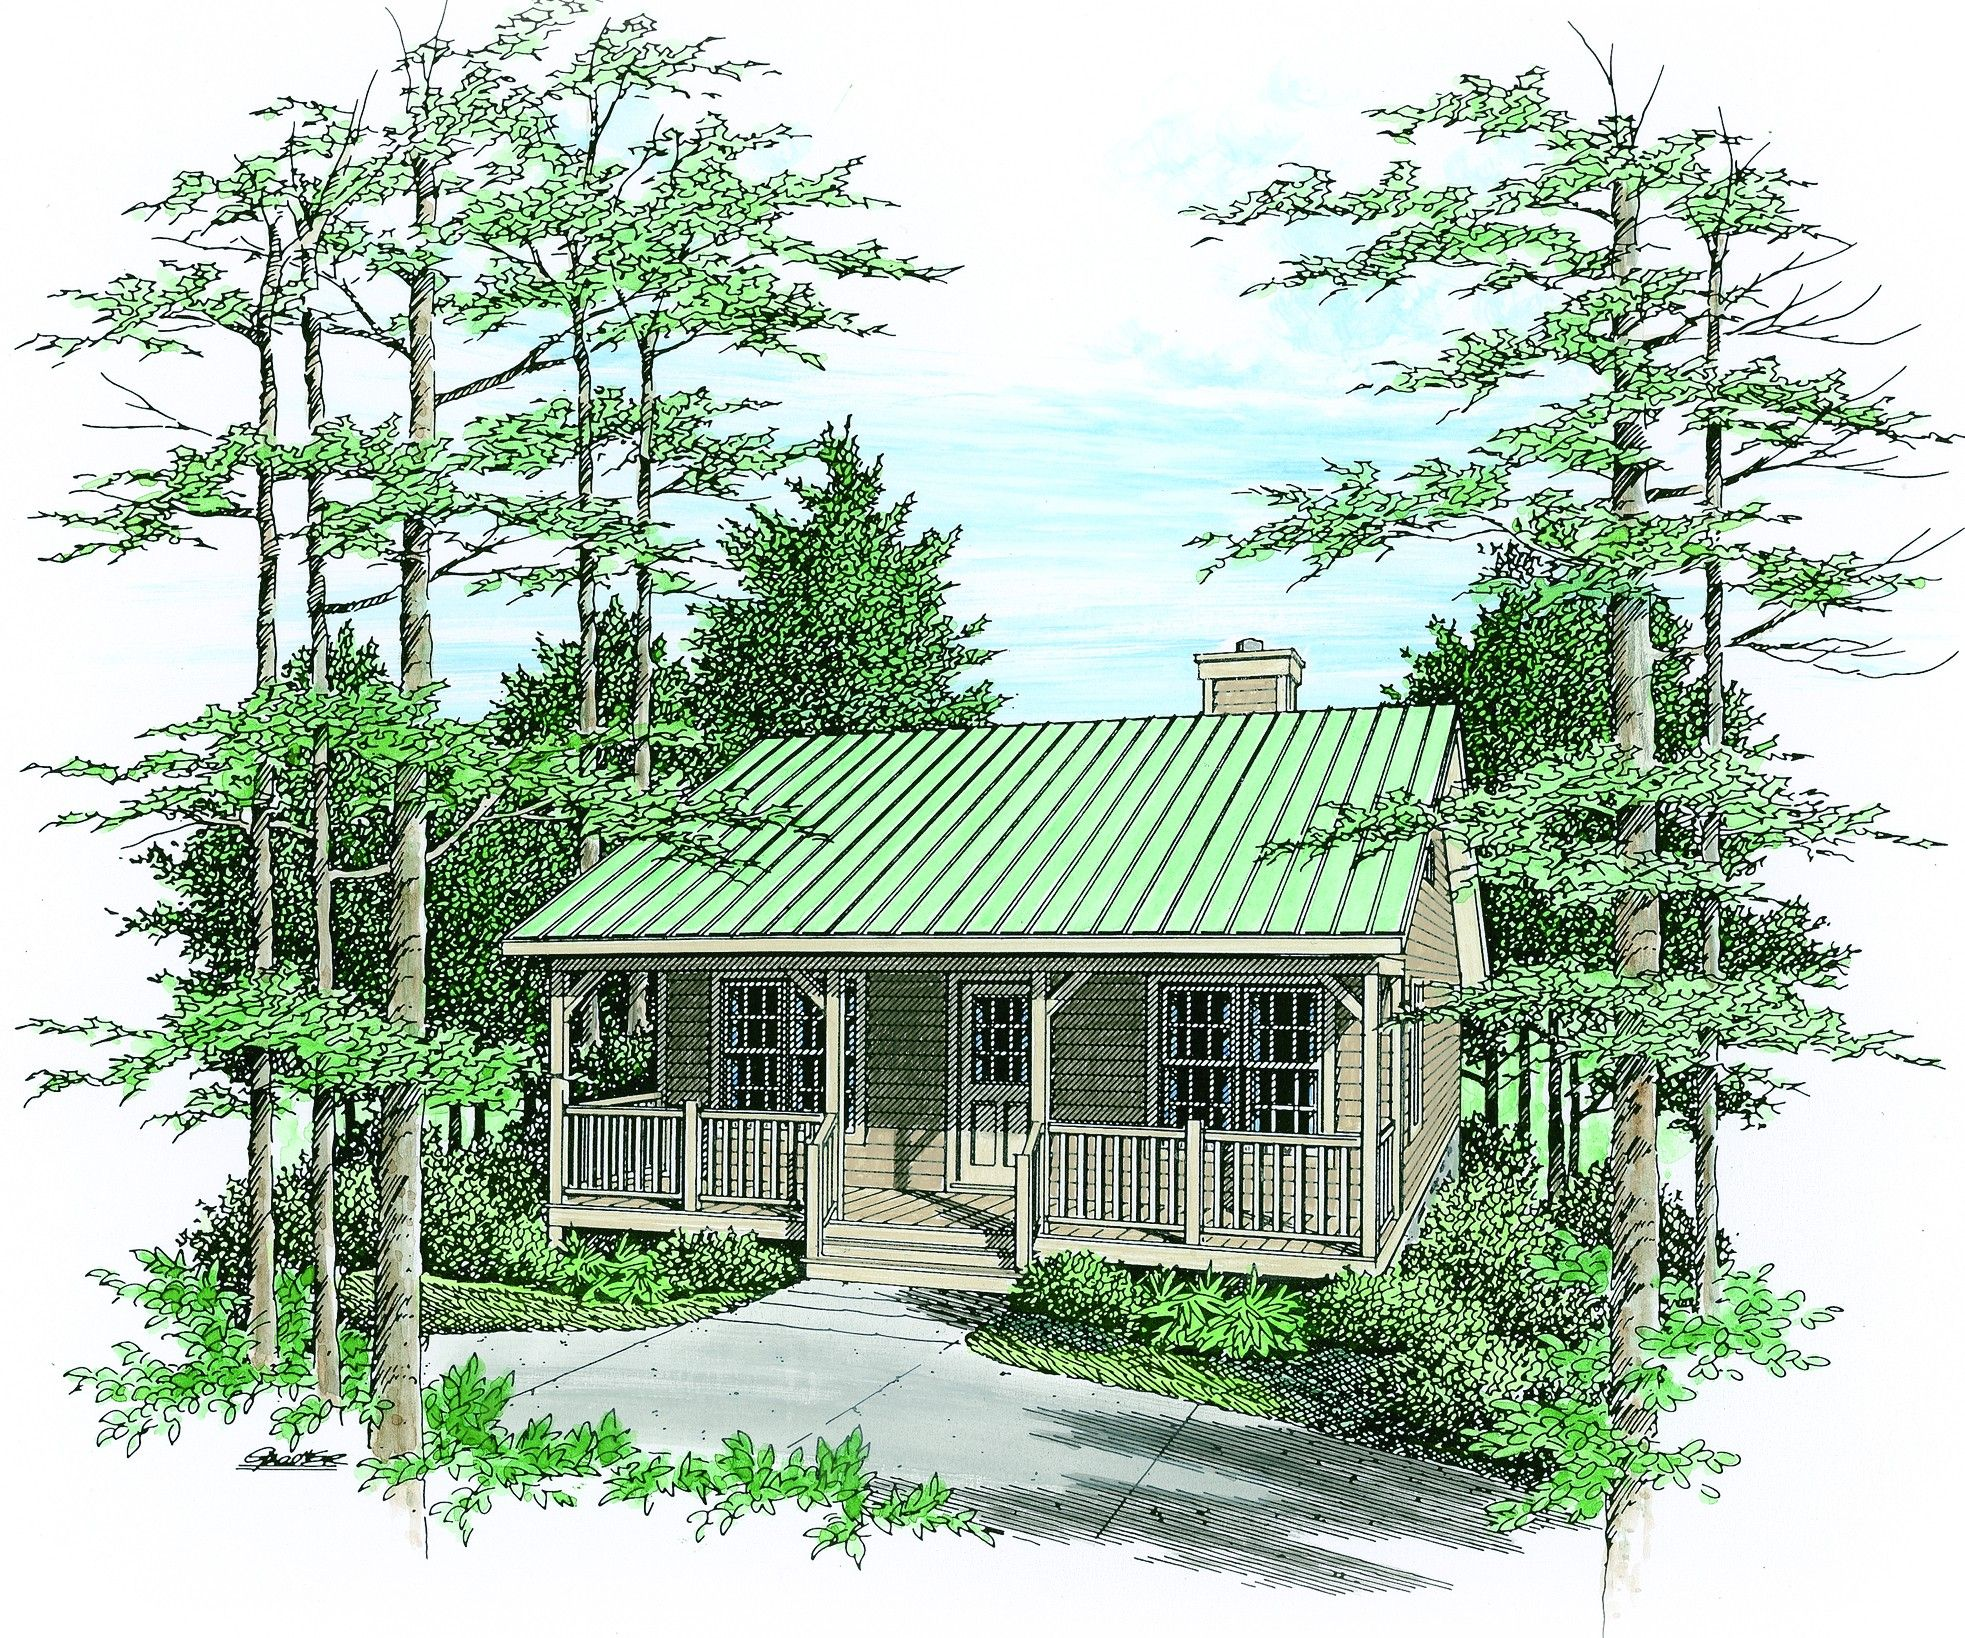 Tiny homes cottage country - Tiny Houses Cozy Country Cabin 2253sl Cottage Country Narrow Lot 1st Floor Master